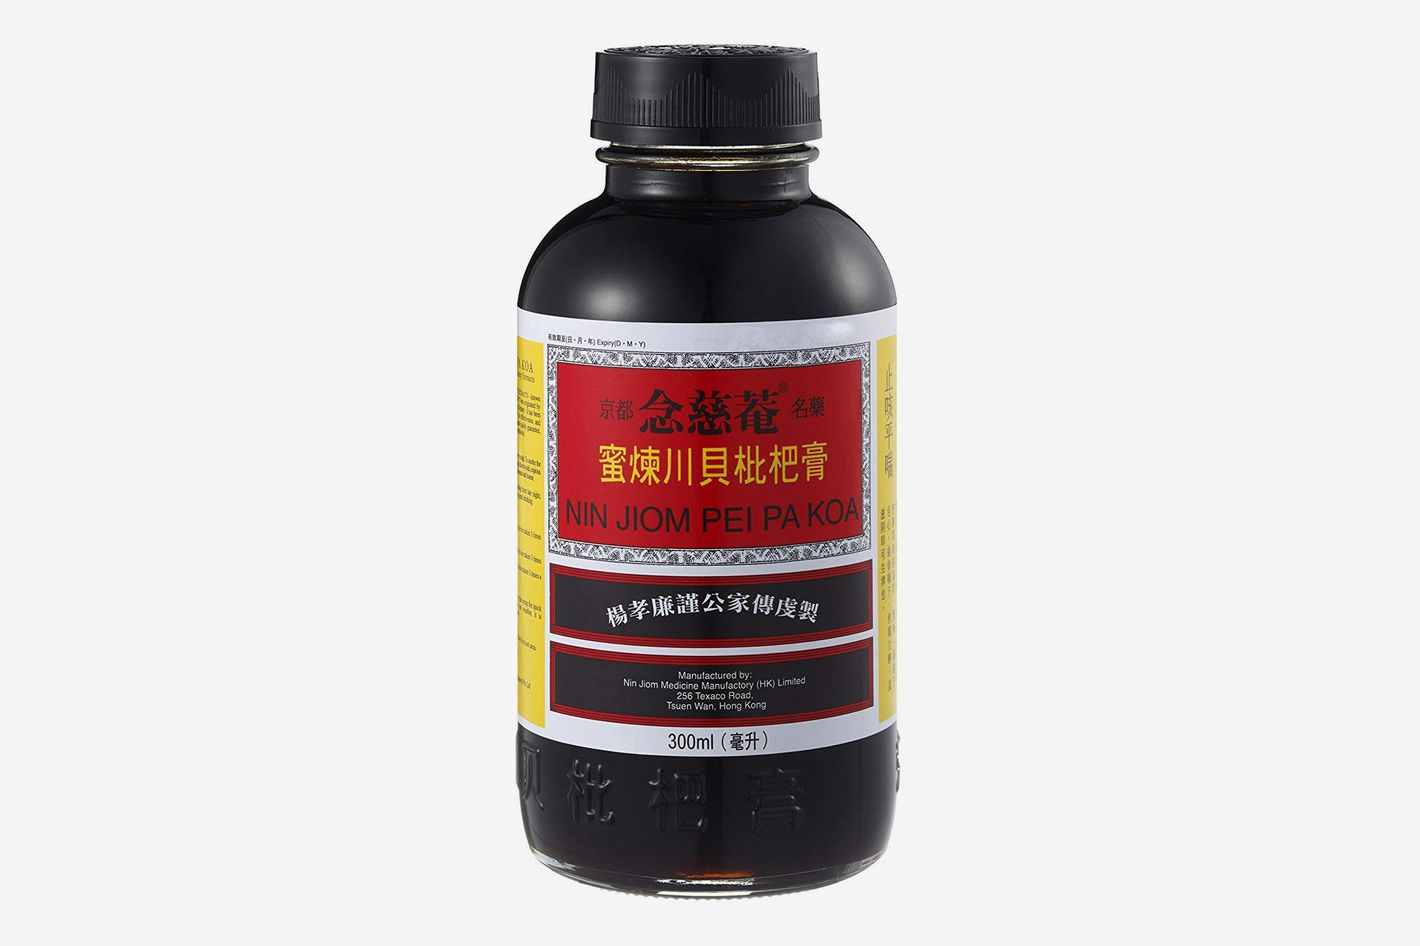 Nin Jiom Pei Pa Koa — Sore Throat Syrup — 100% Natural